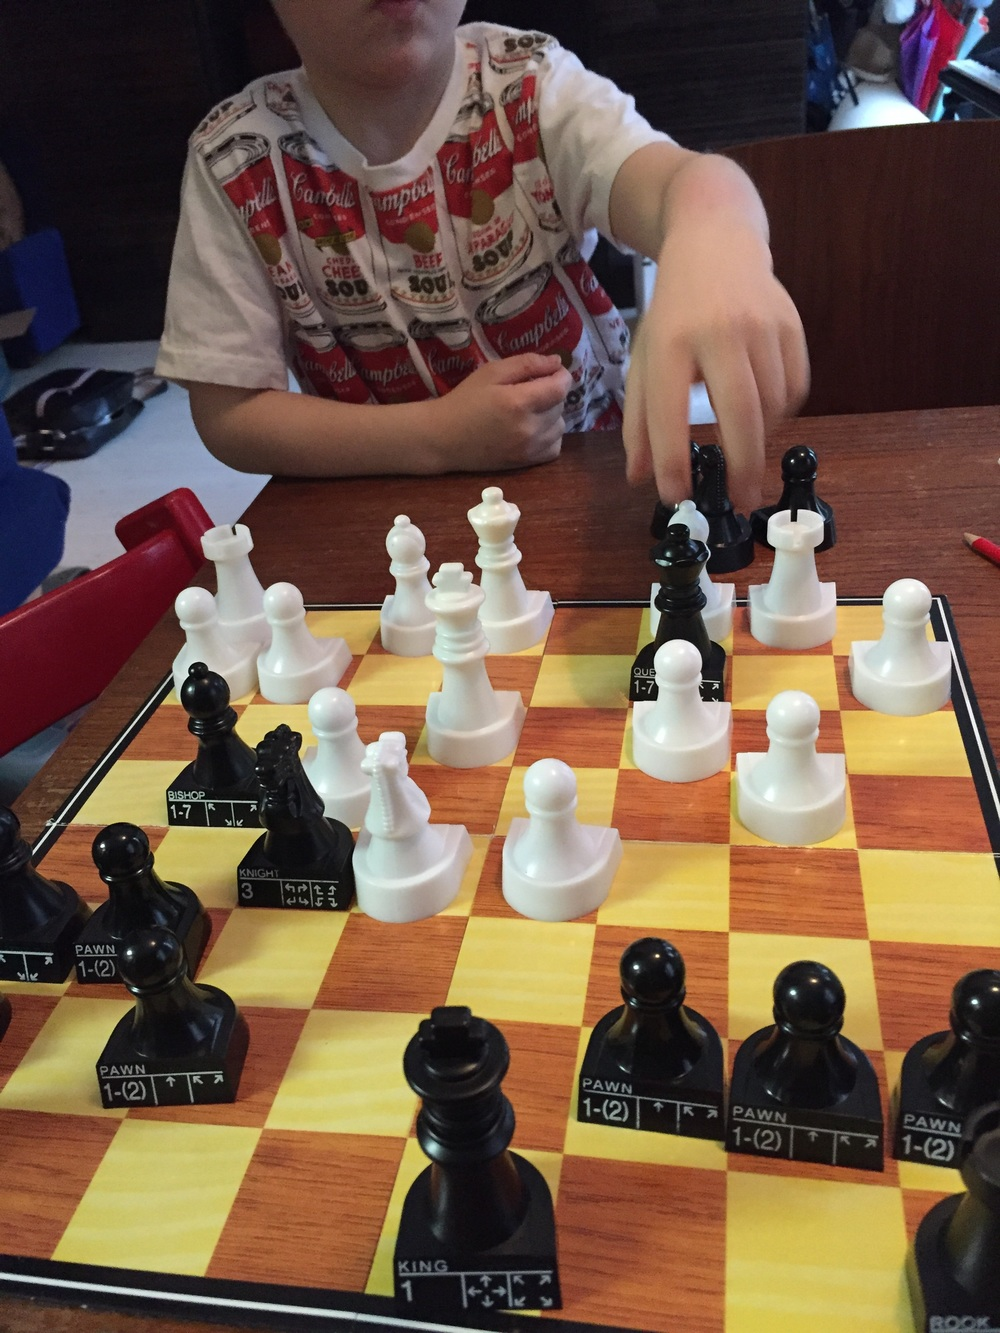 Was it checkmate? We investigated.